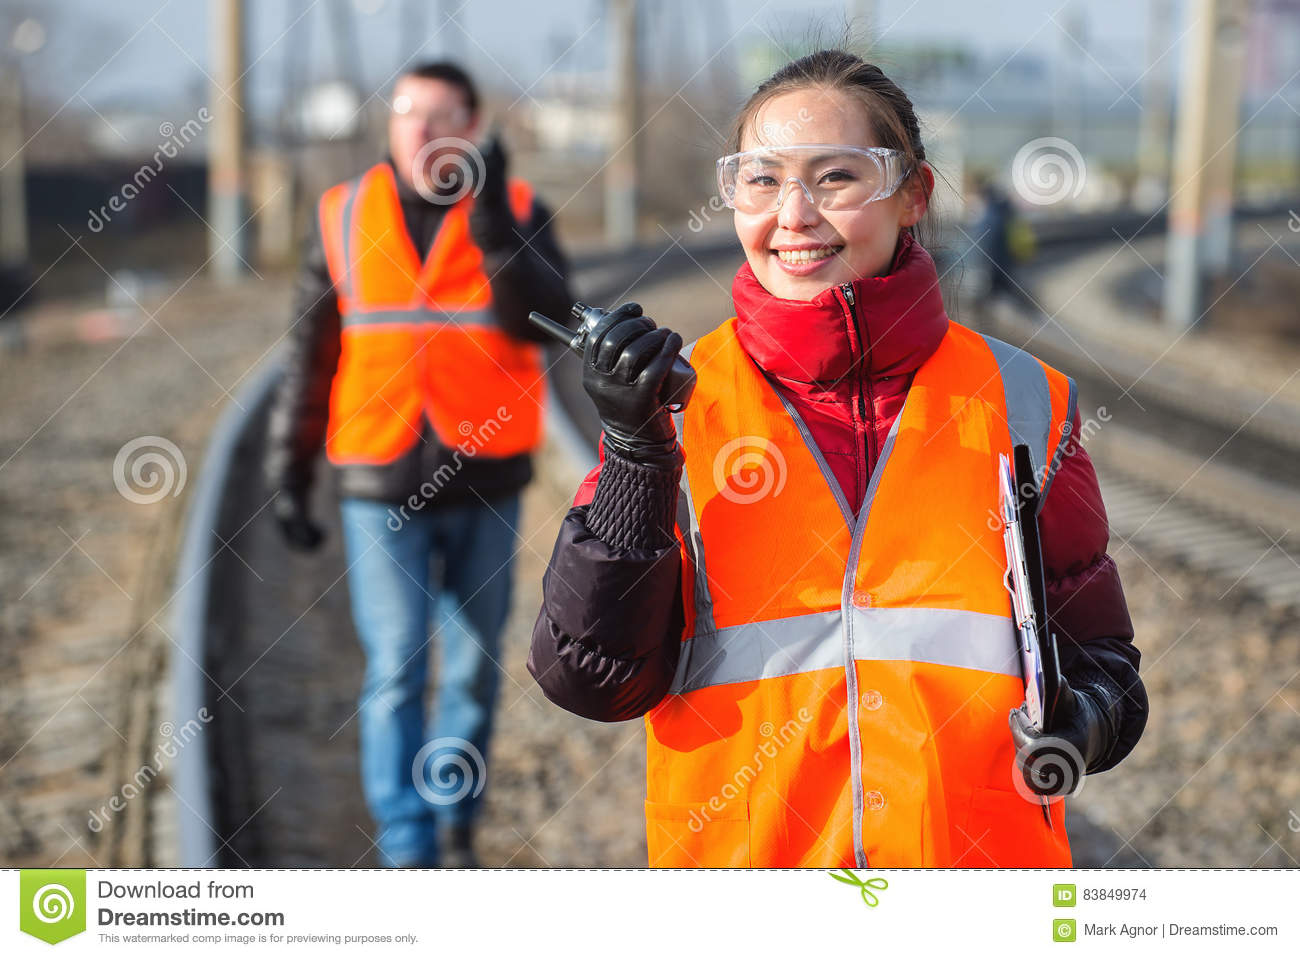 Railroad Workers Doing Their Job Stock Photo - Image of